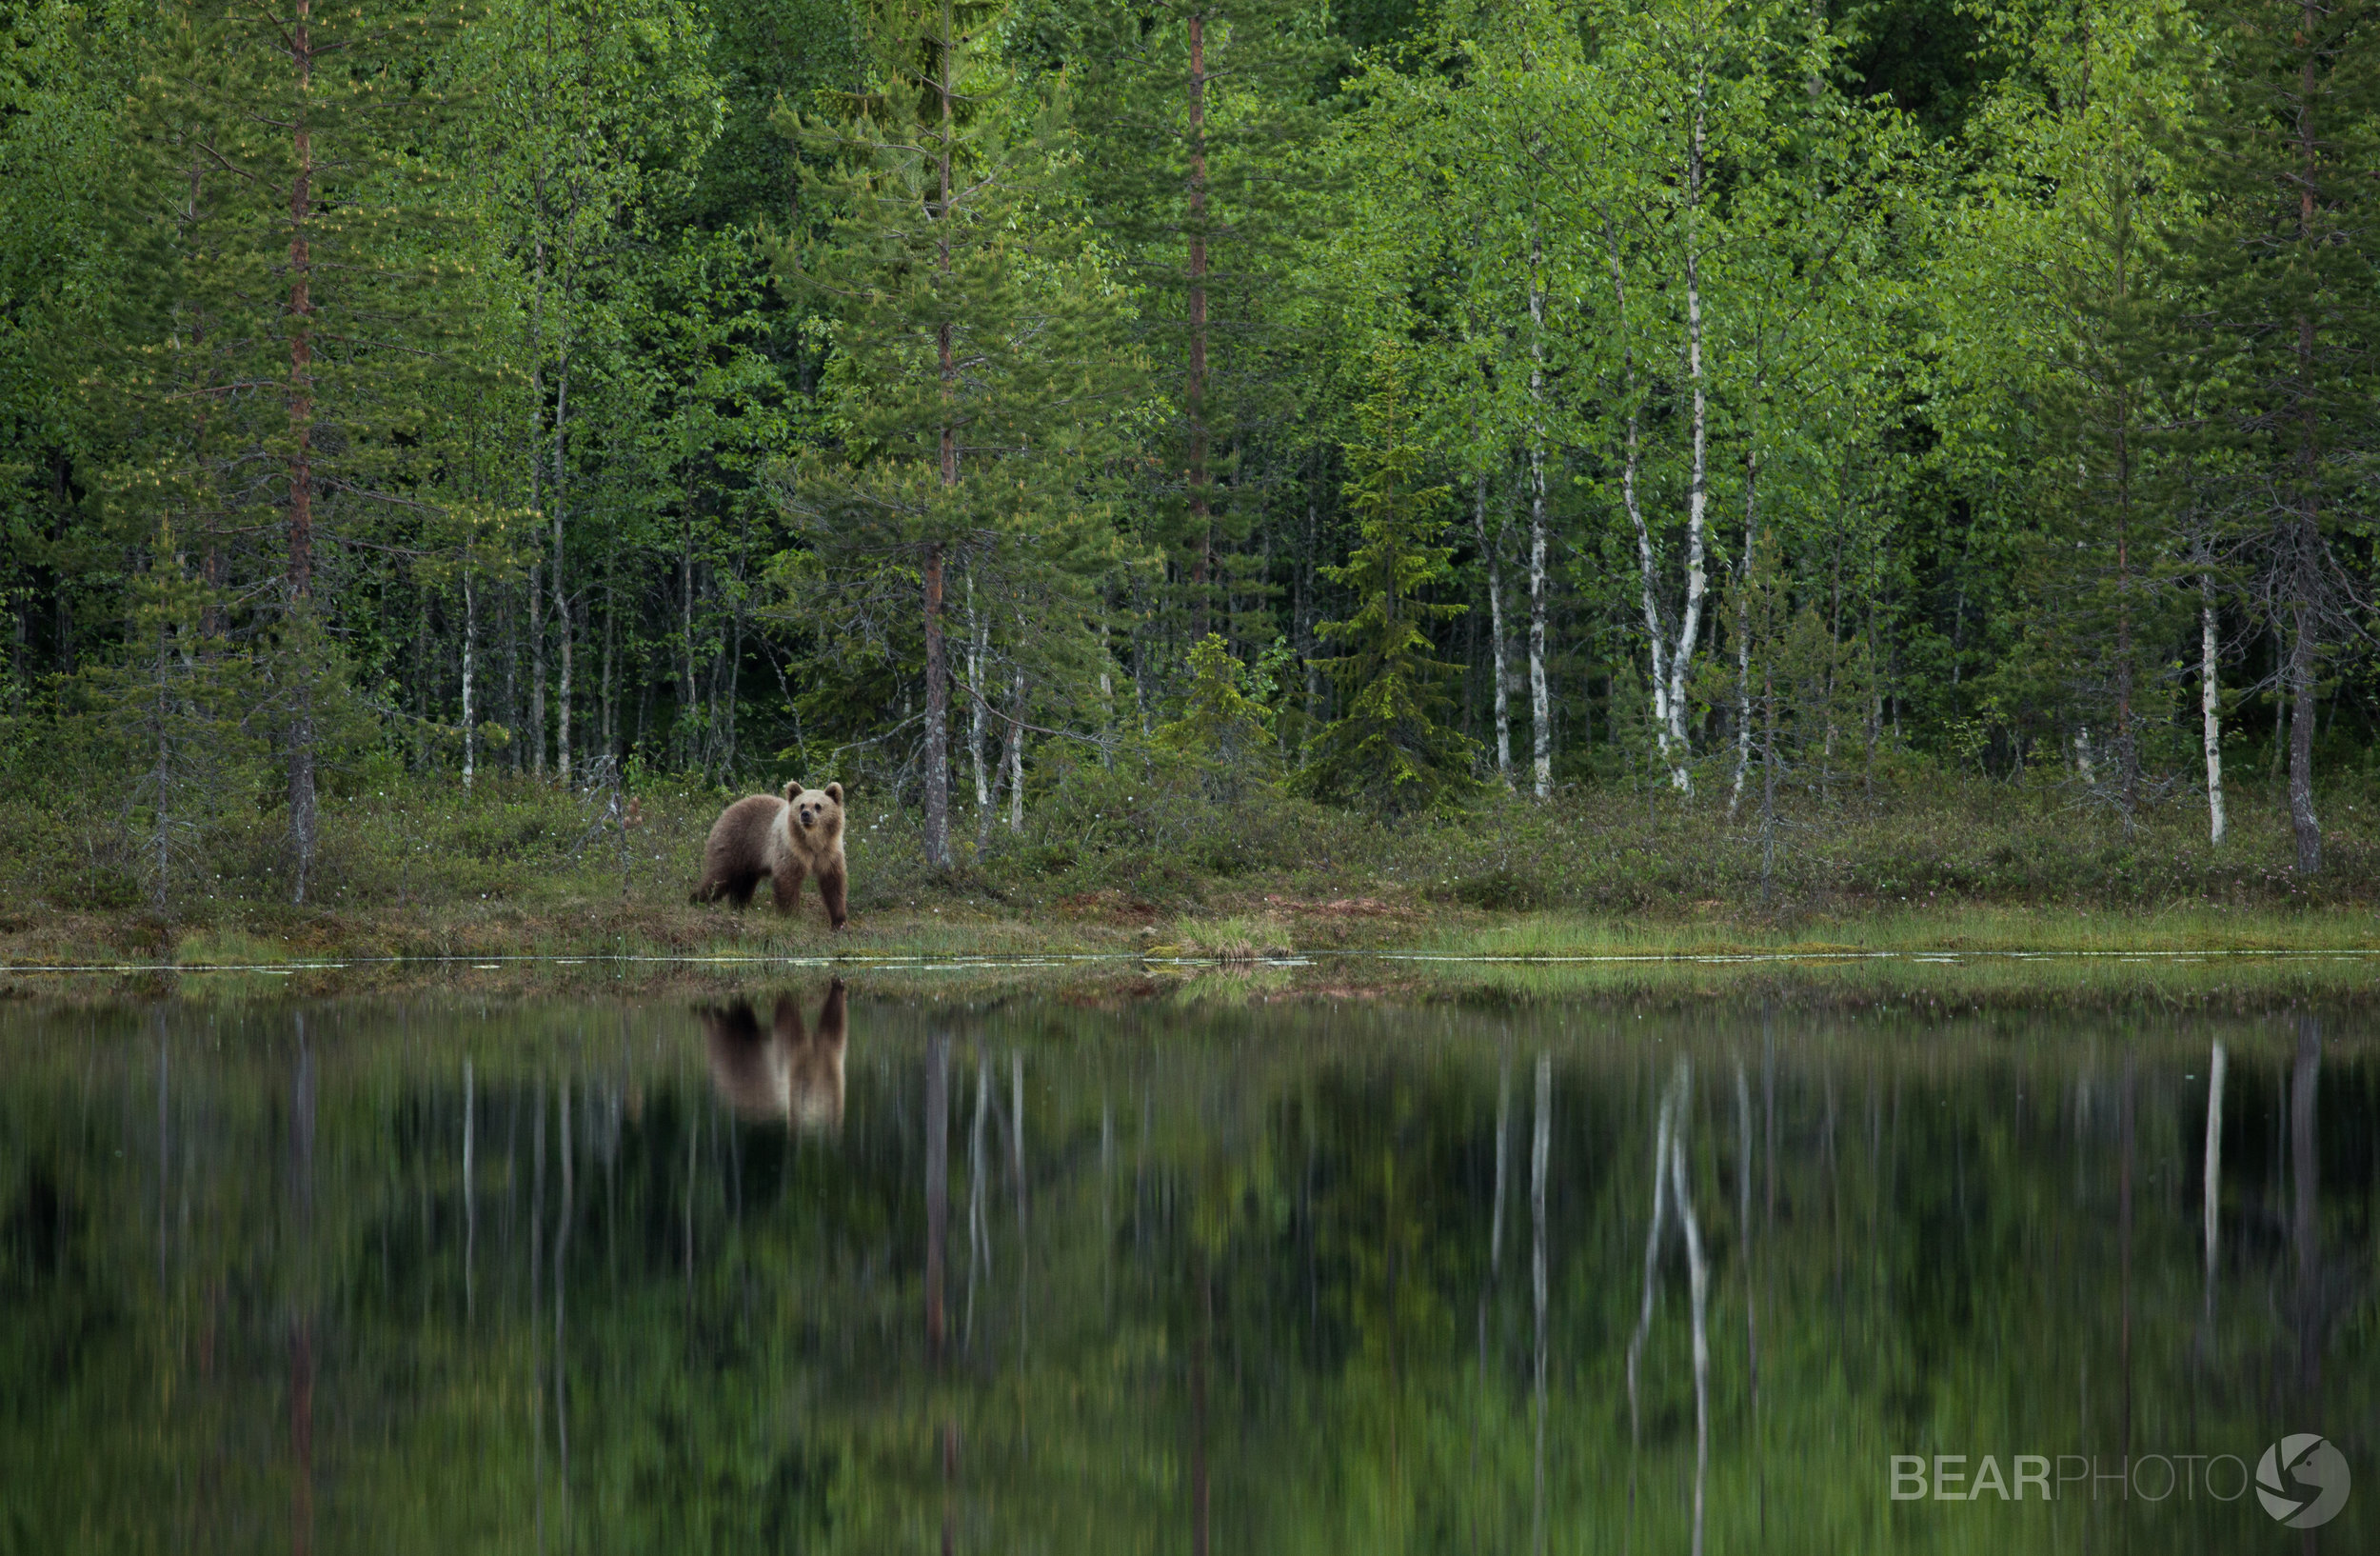 A pale female Brown Bear emerges from the forest edge on a calm evening, her shape reflected into the still water.